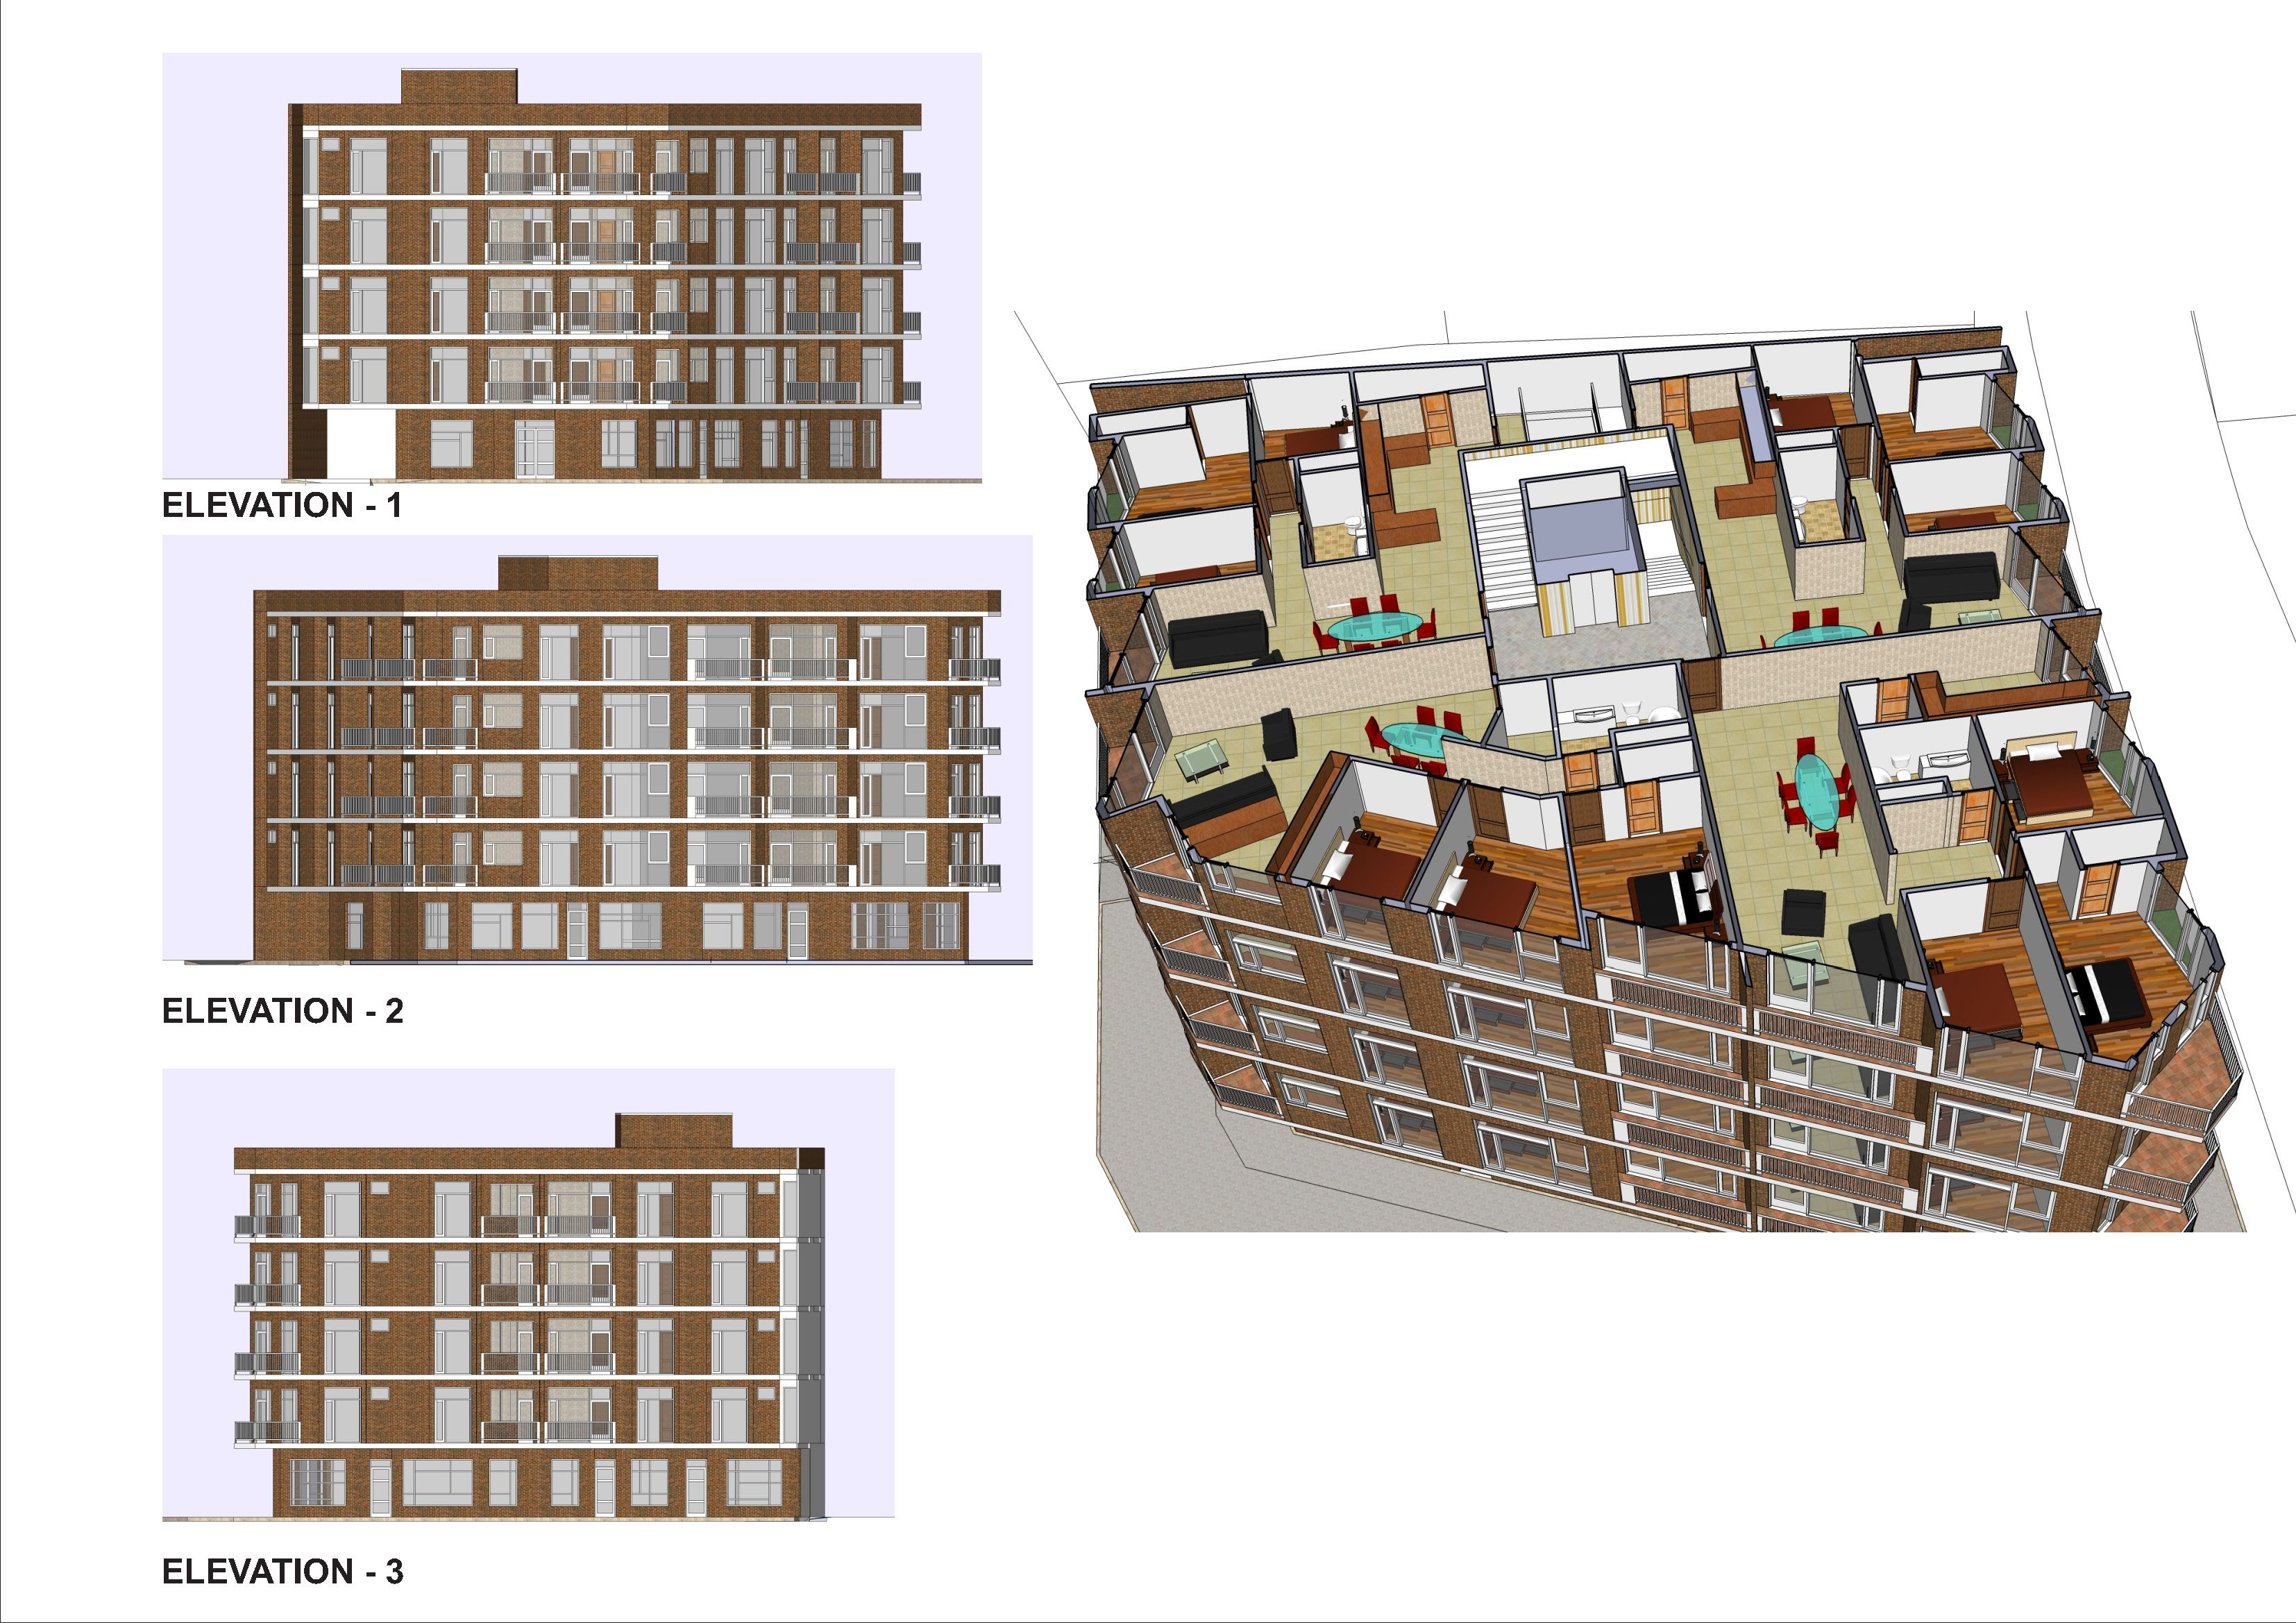 Apartment building plans location aksaray turkey new for Free online building design